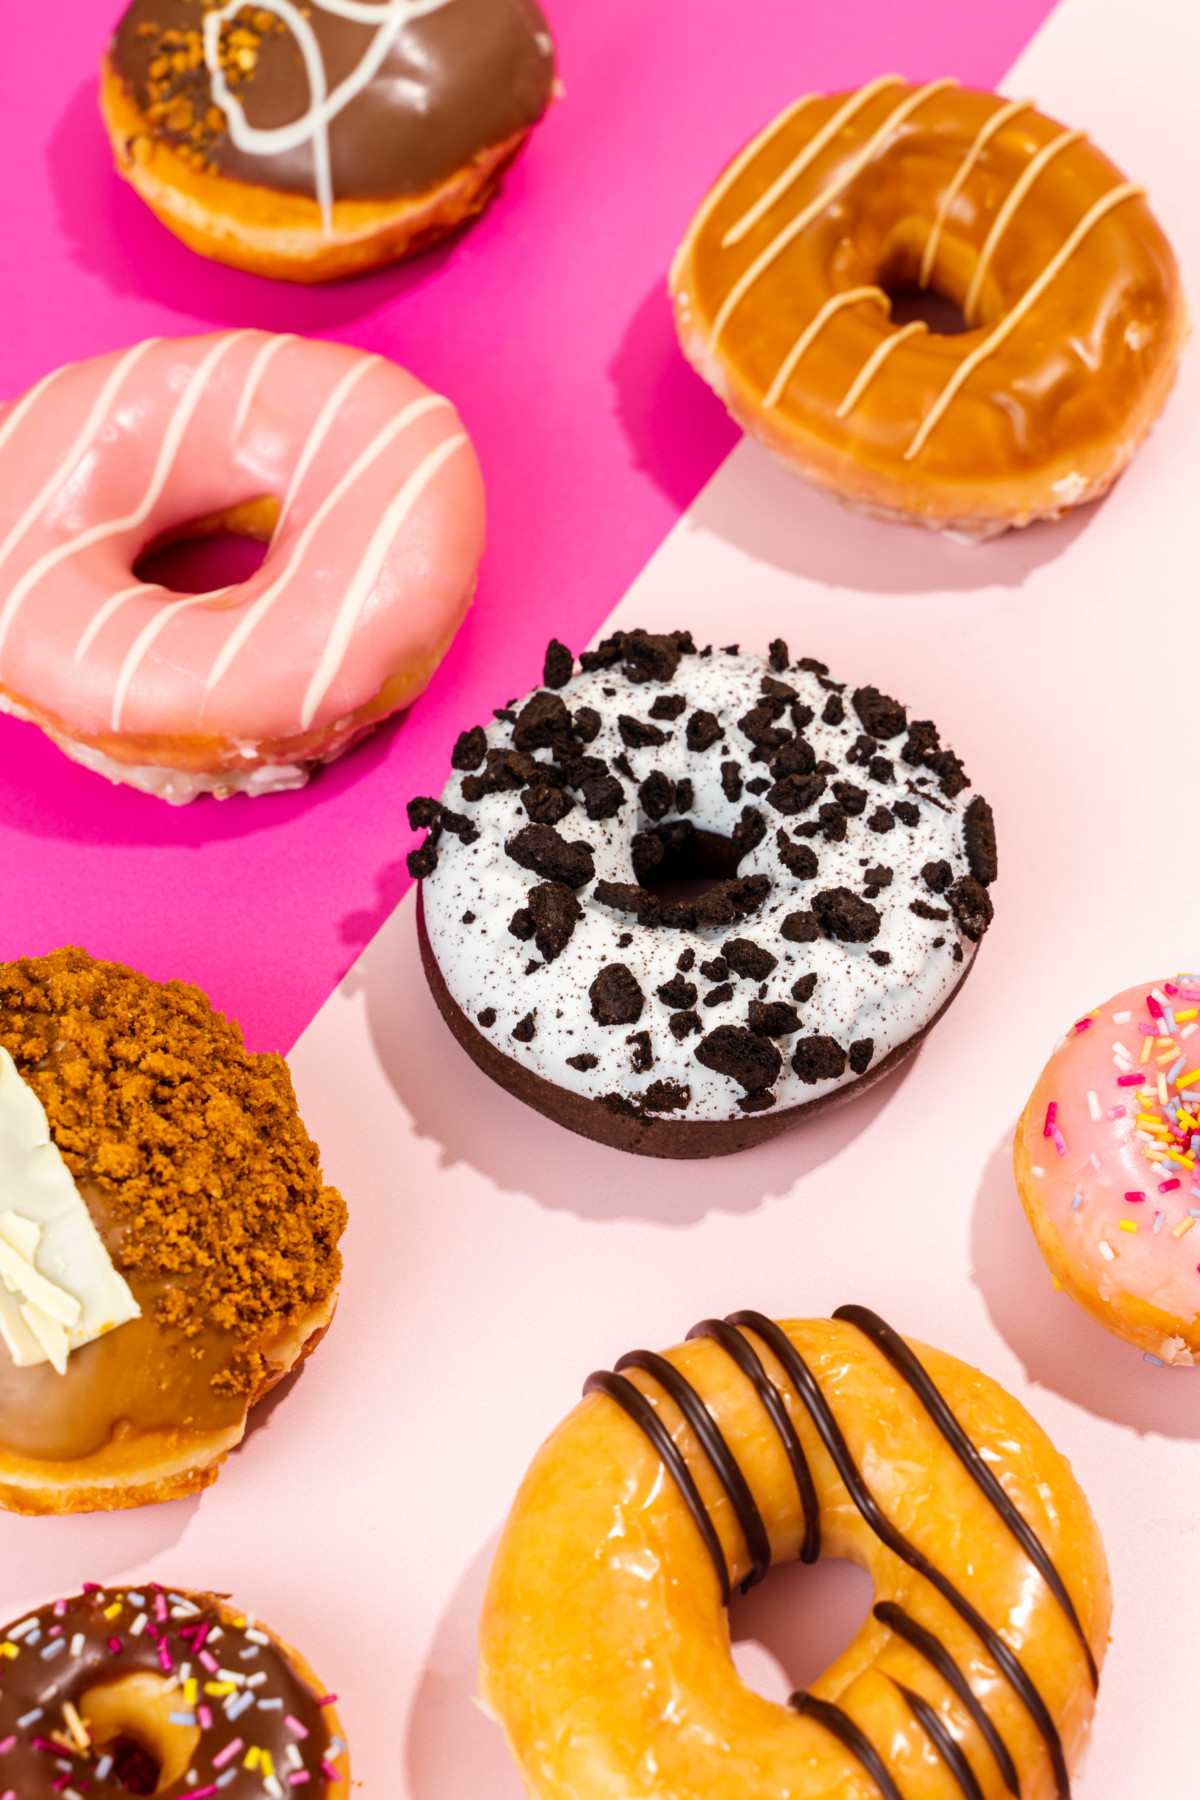 Archies | Donuts & Food Photography